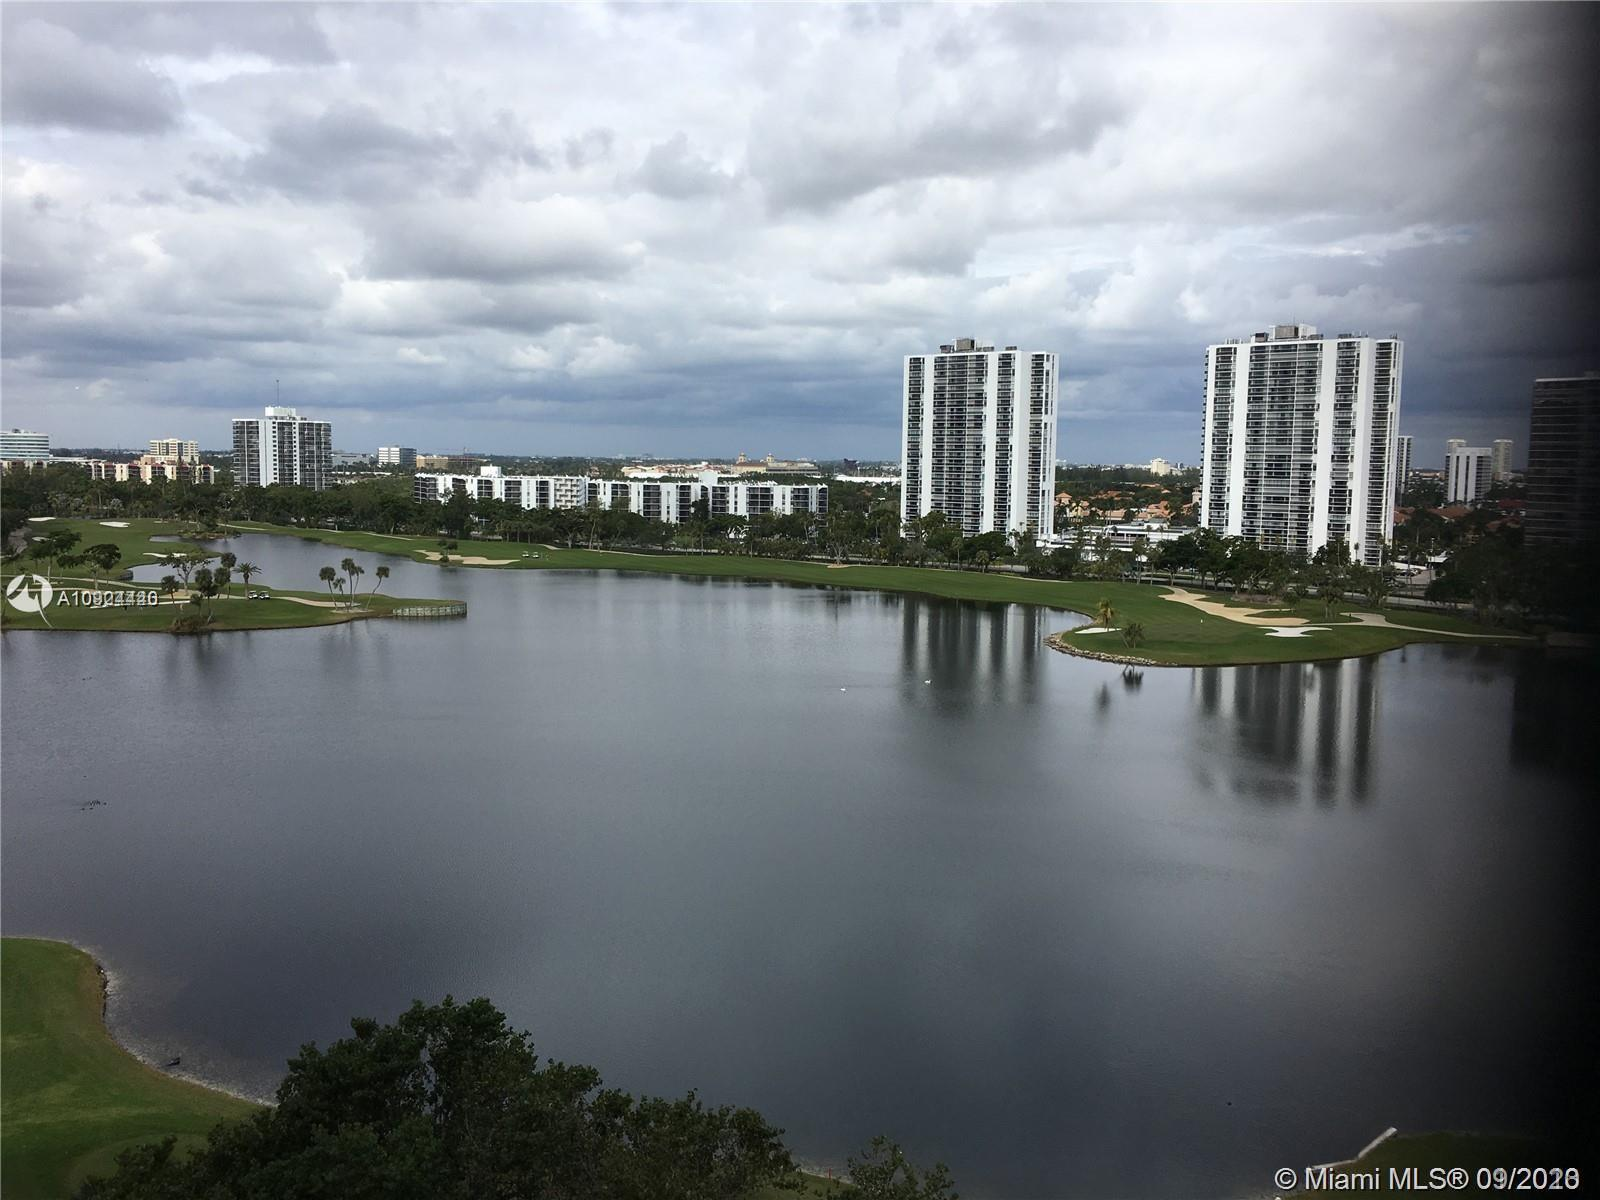 BEAUTIFUL AND IMMACULATE READY TO MOVE IN CONDO IN PRESTIGIOUS TURNBERRY VILLAGE. MAGNIFICENT VIEWS